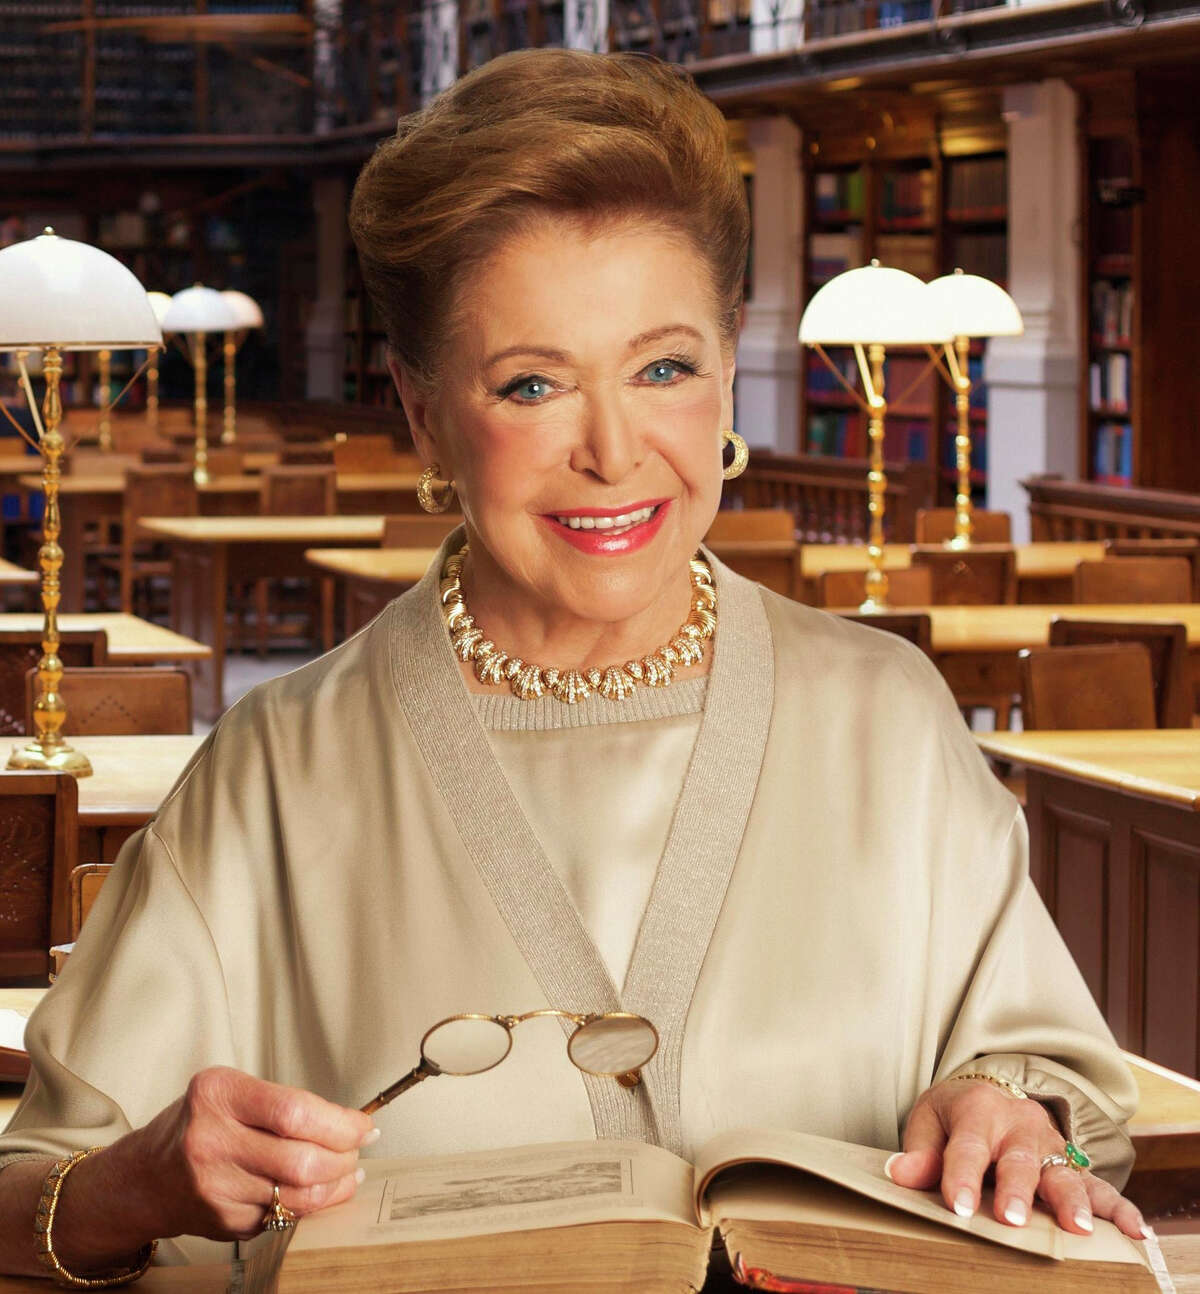 Suspense writer Mary Higgins Clark will be talking about her latest book at Sacred Heart University in Fairfield on May 3.